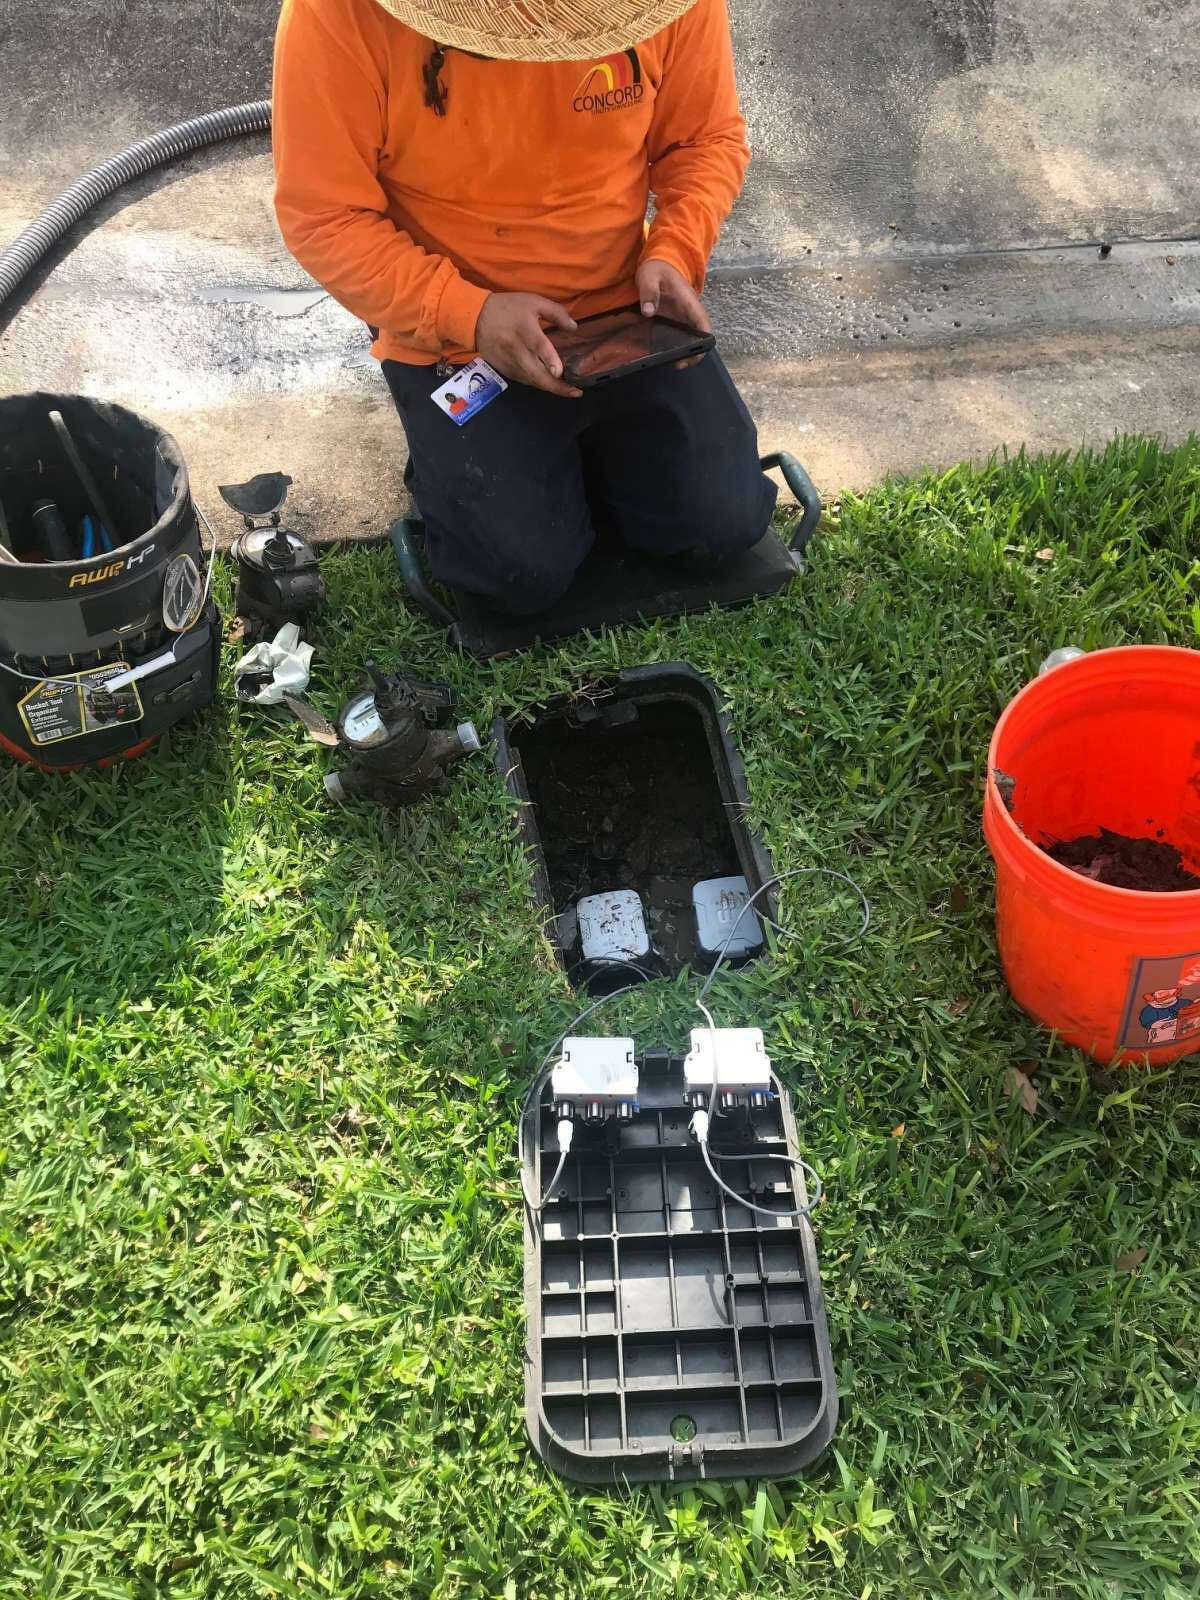 The city of Pearland has completed installation of new digital meters for water customers and is running a pilot program with a select group of meters before launching the system citywide.